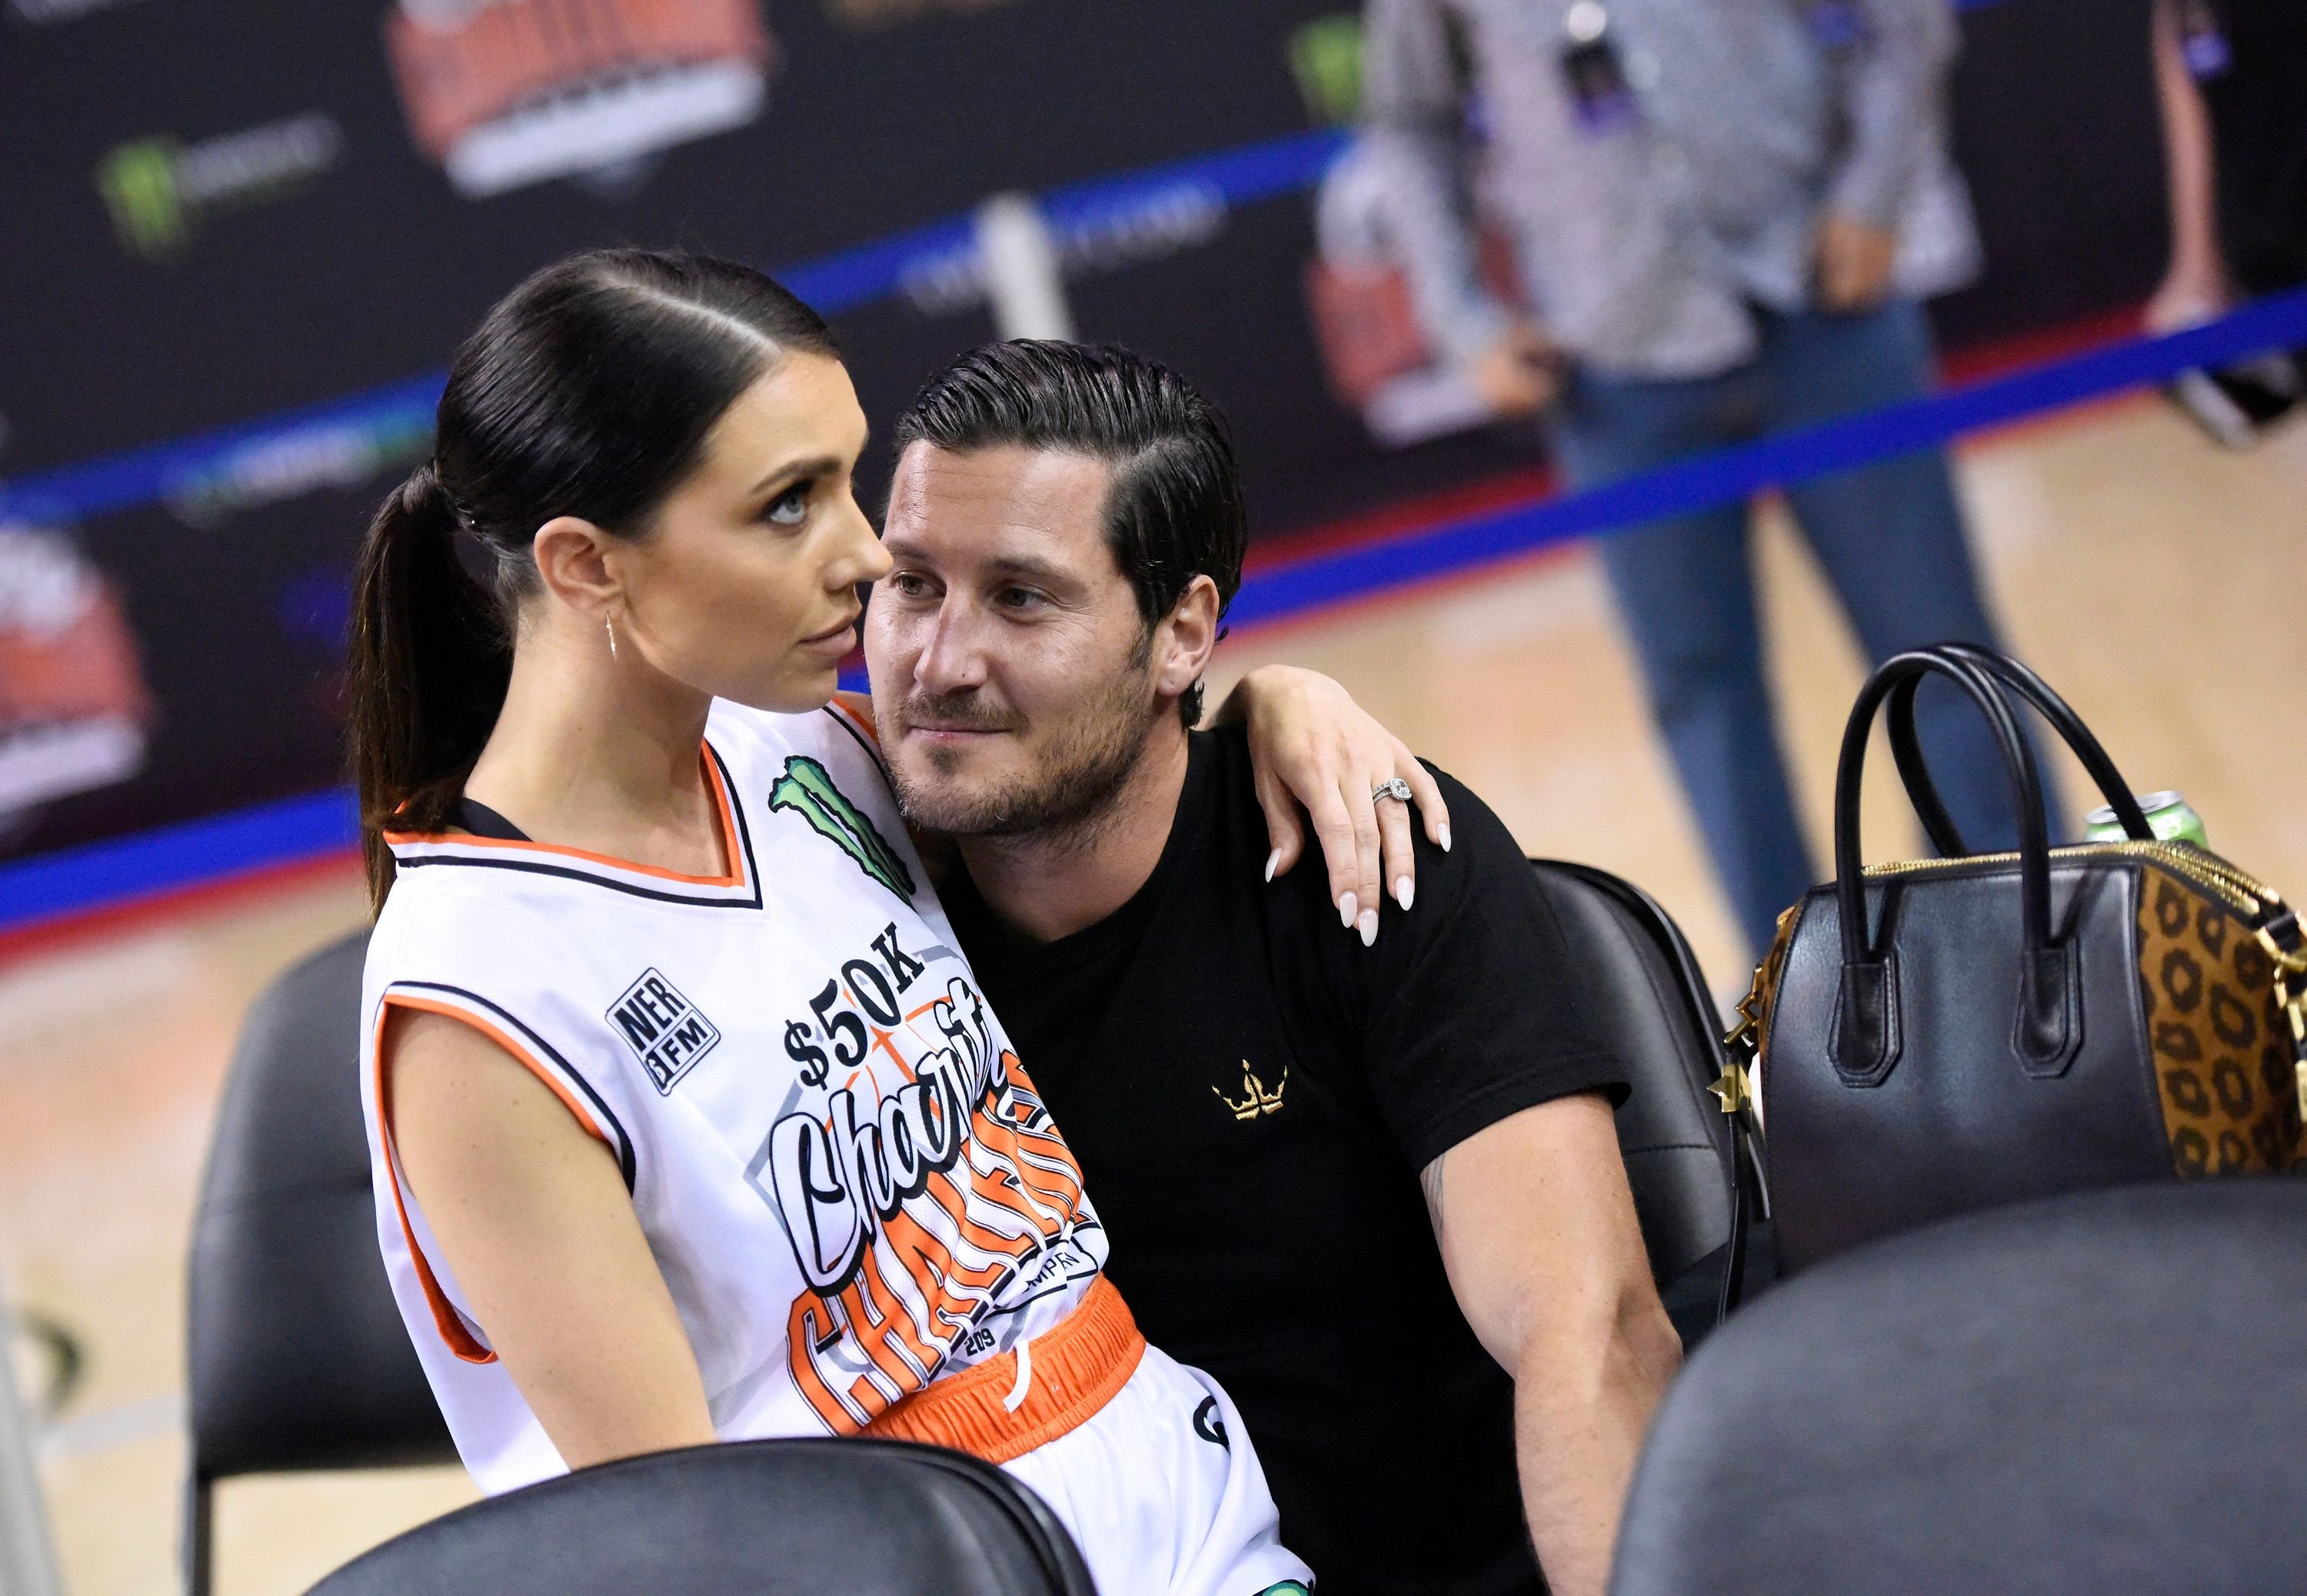 Val Chmerkovskiy and Jenna Johnson at the Monster Energy $50K Charity Challenge Celebrity Basketball Game in 2019 in Westwood, California | Source: Getty Images